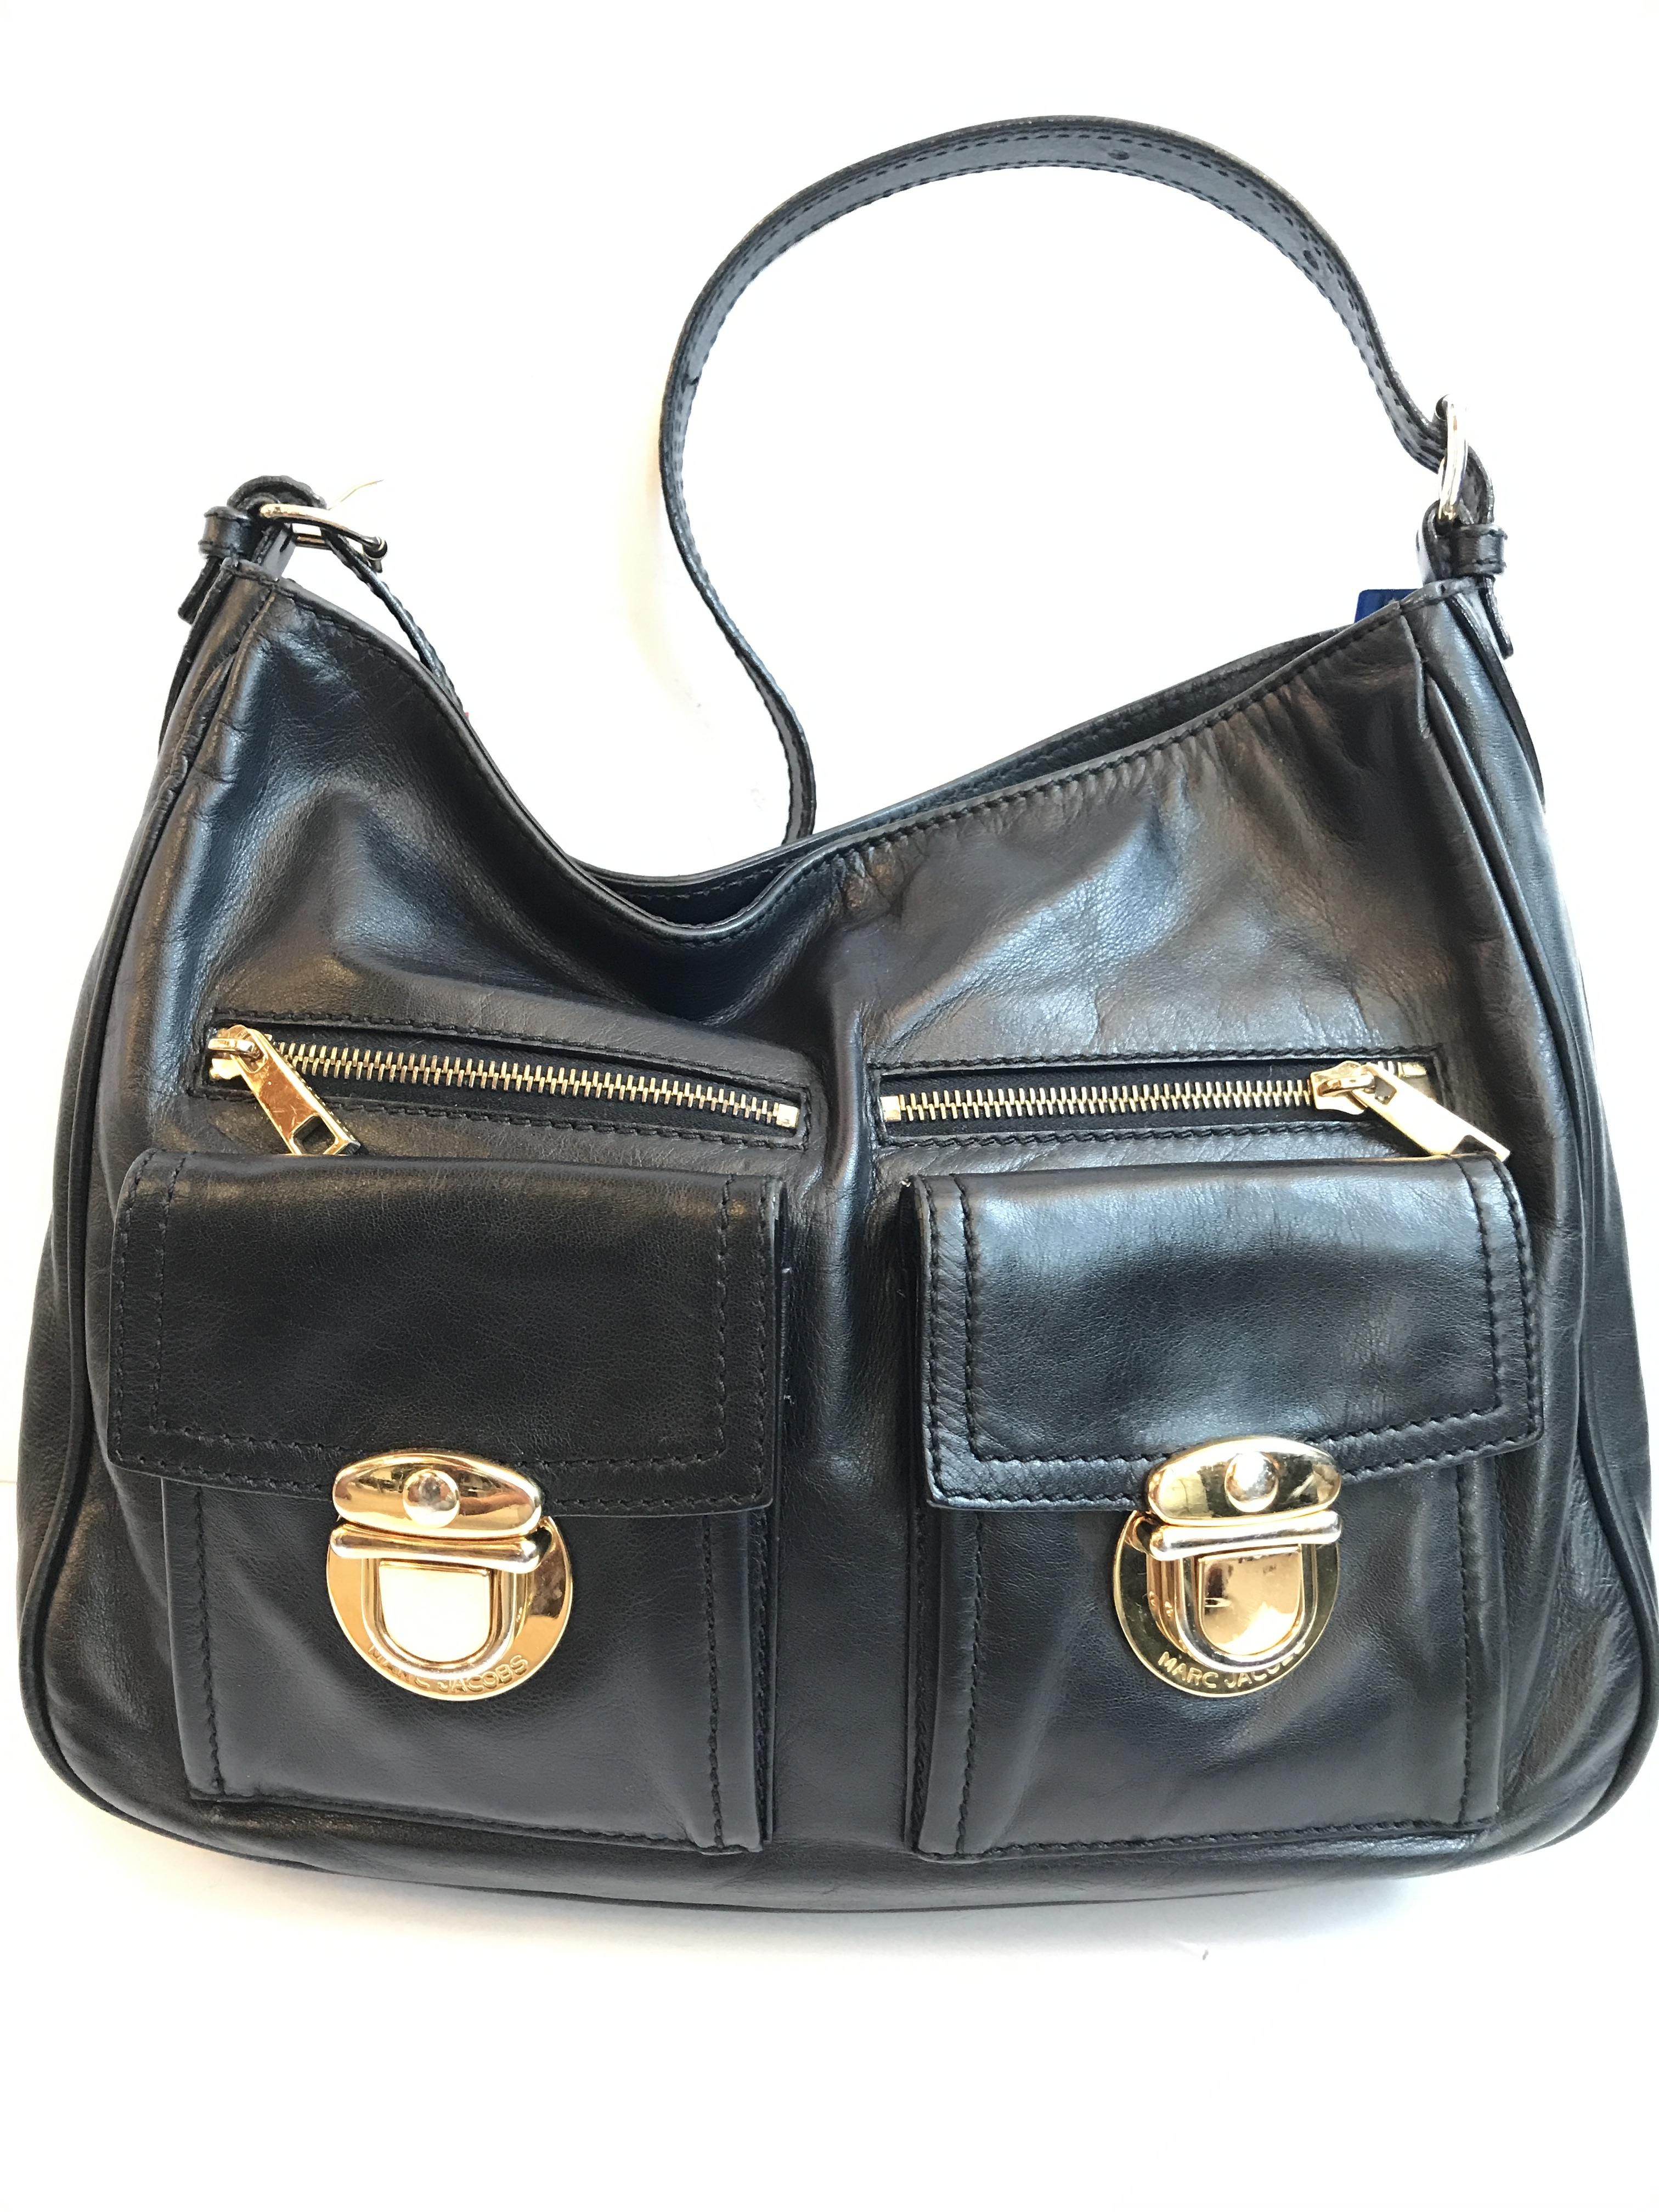 Marc jacobs black with Purses, Handbags Price: $299.99